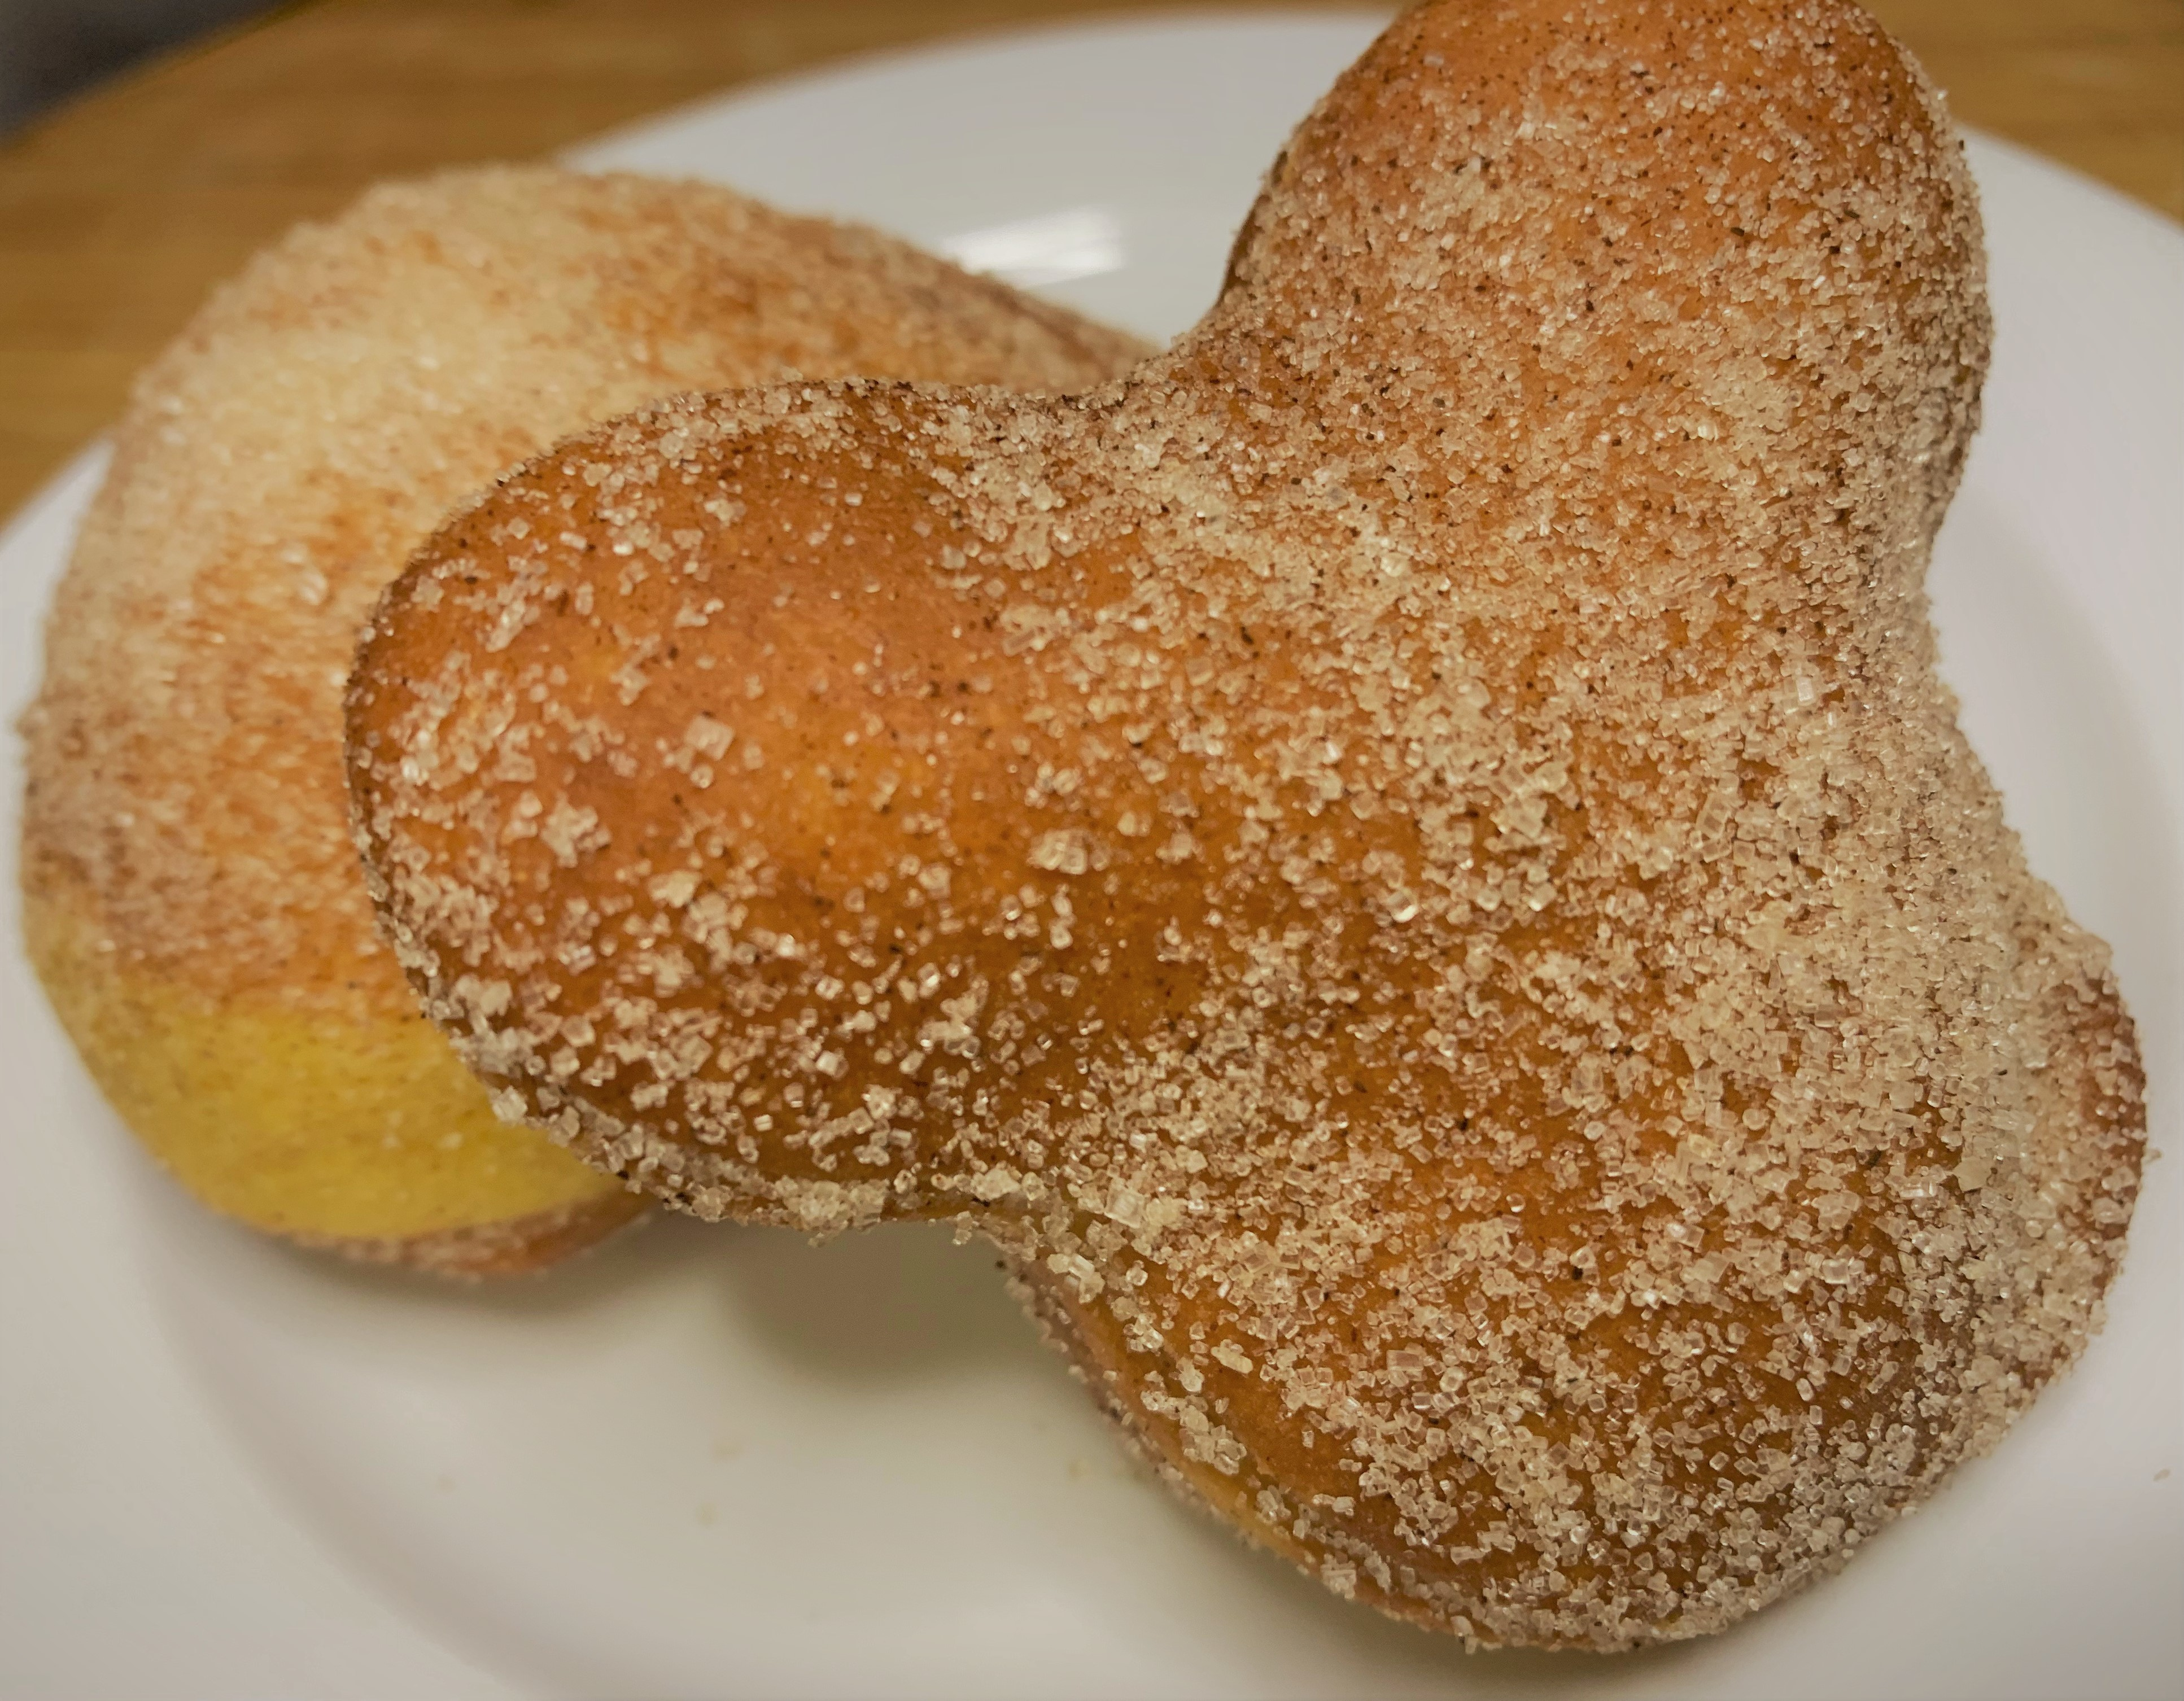 A cinnamon-sugar alternate topping to the beignets